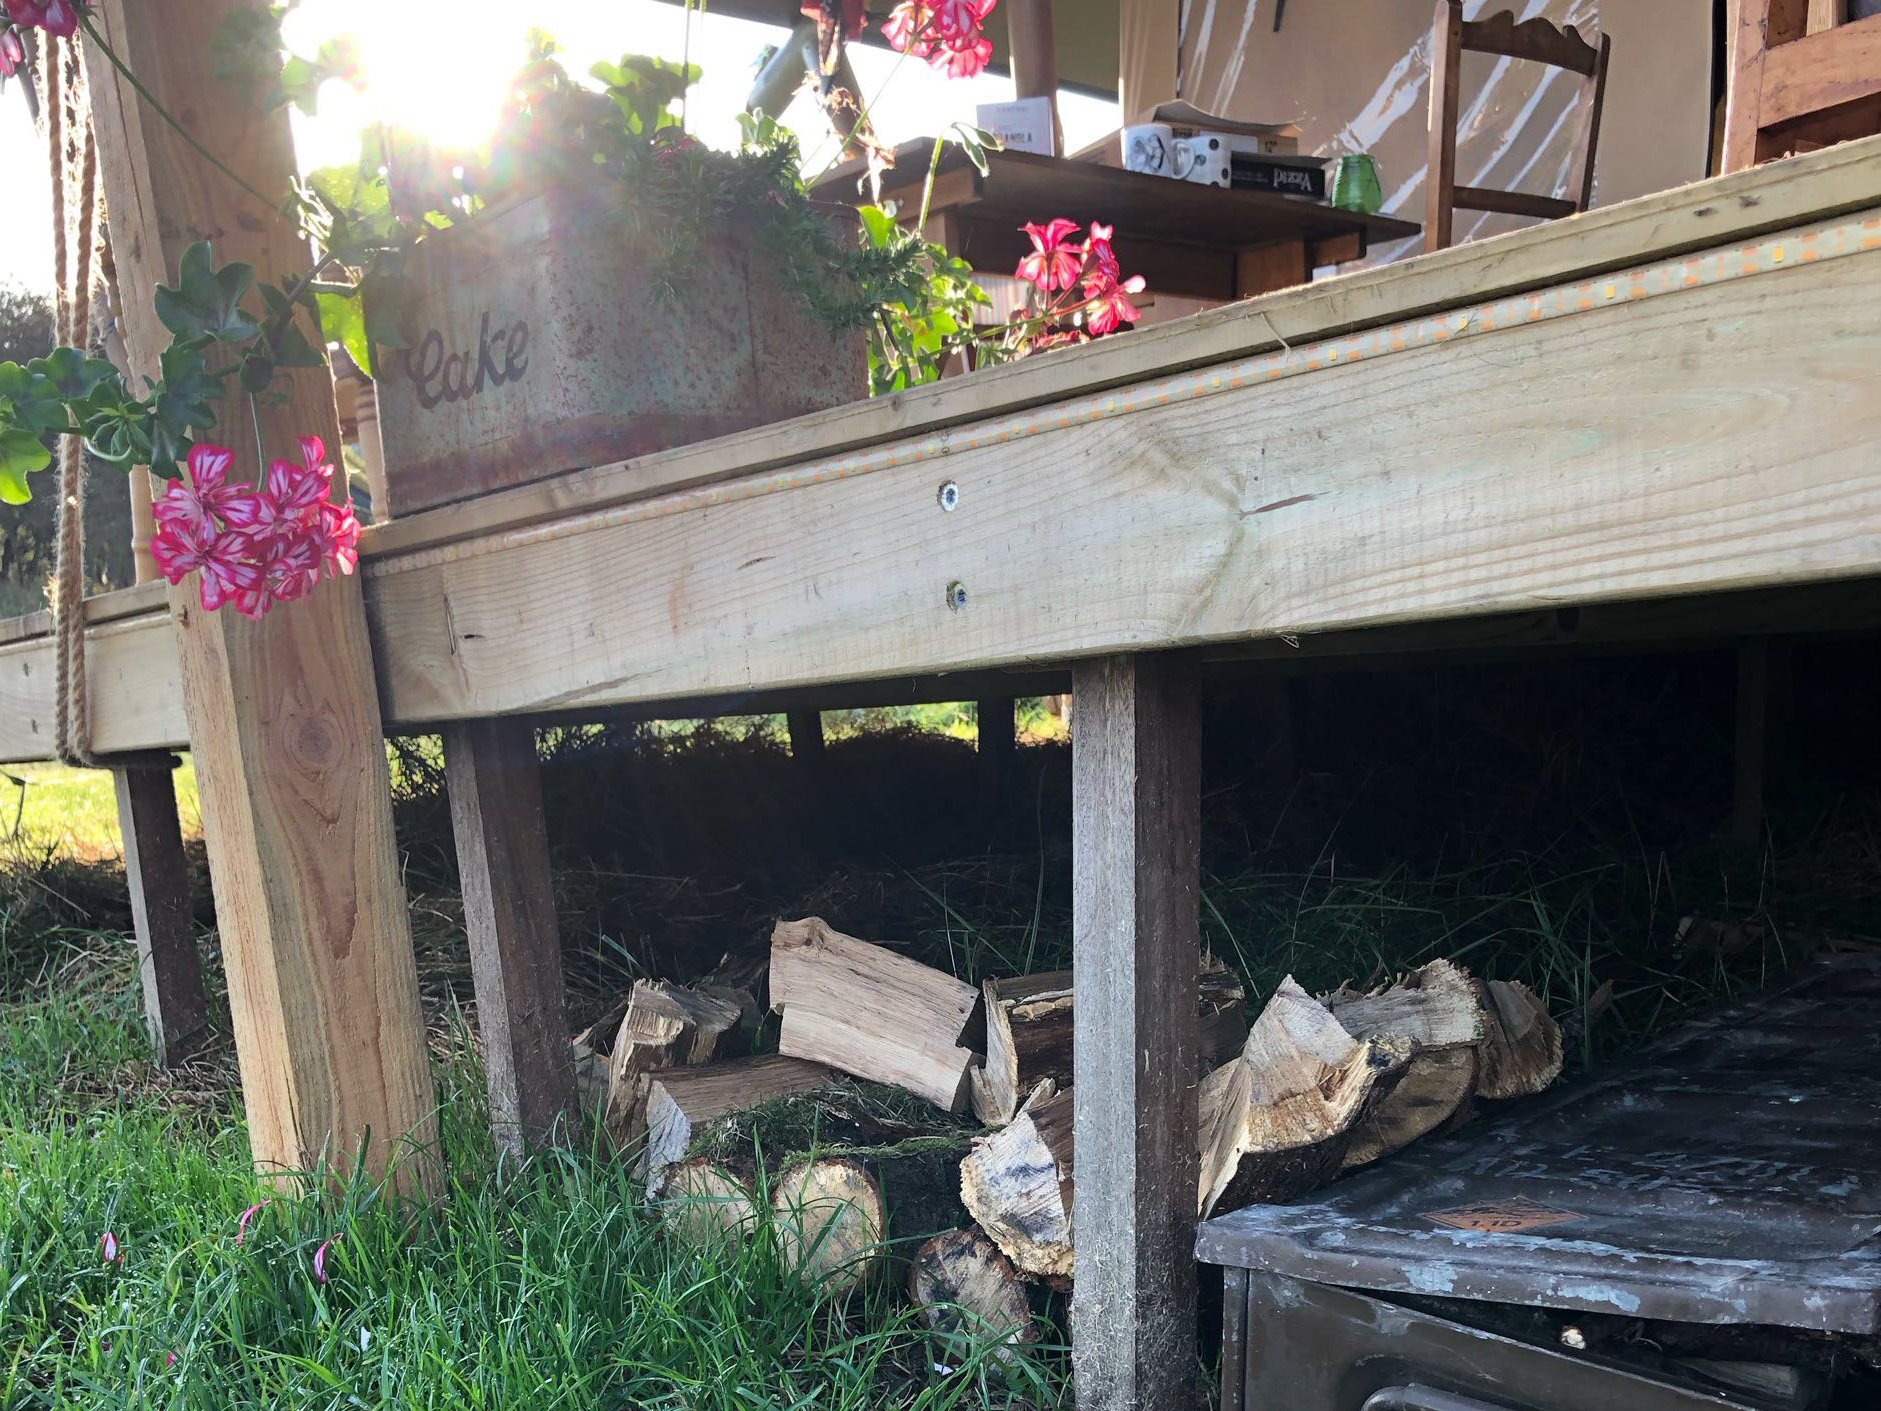 Flowers and firewood, ready for a weekend glamping